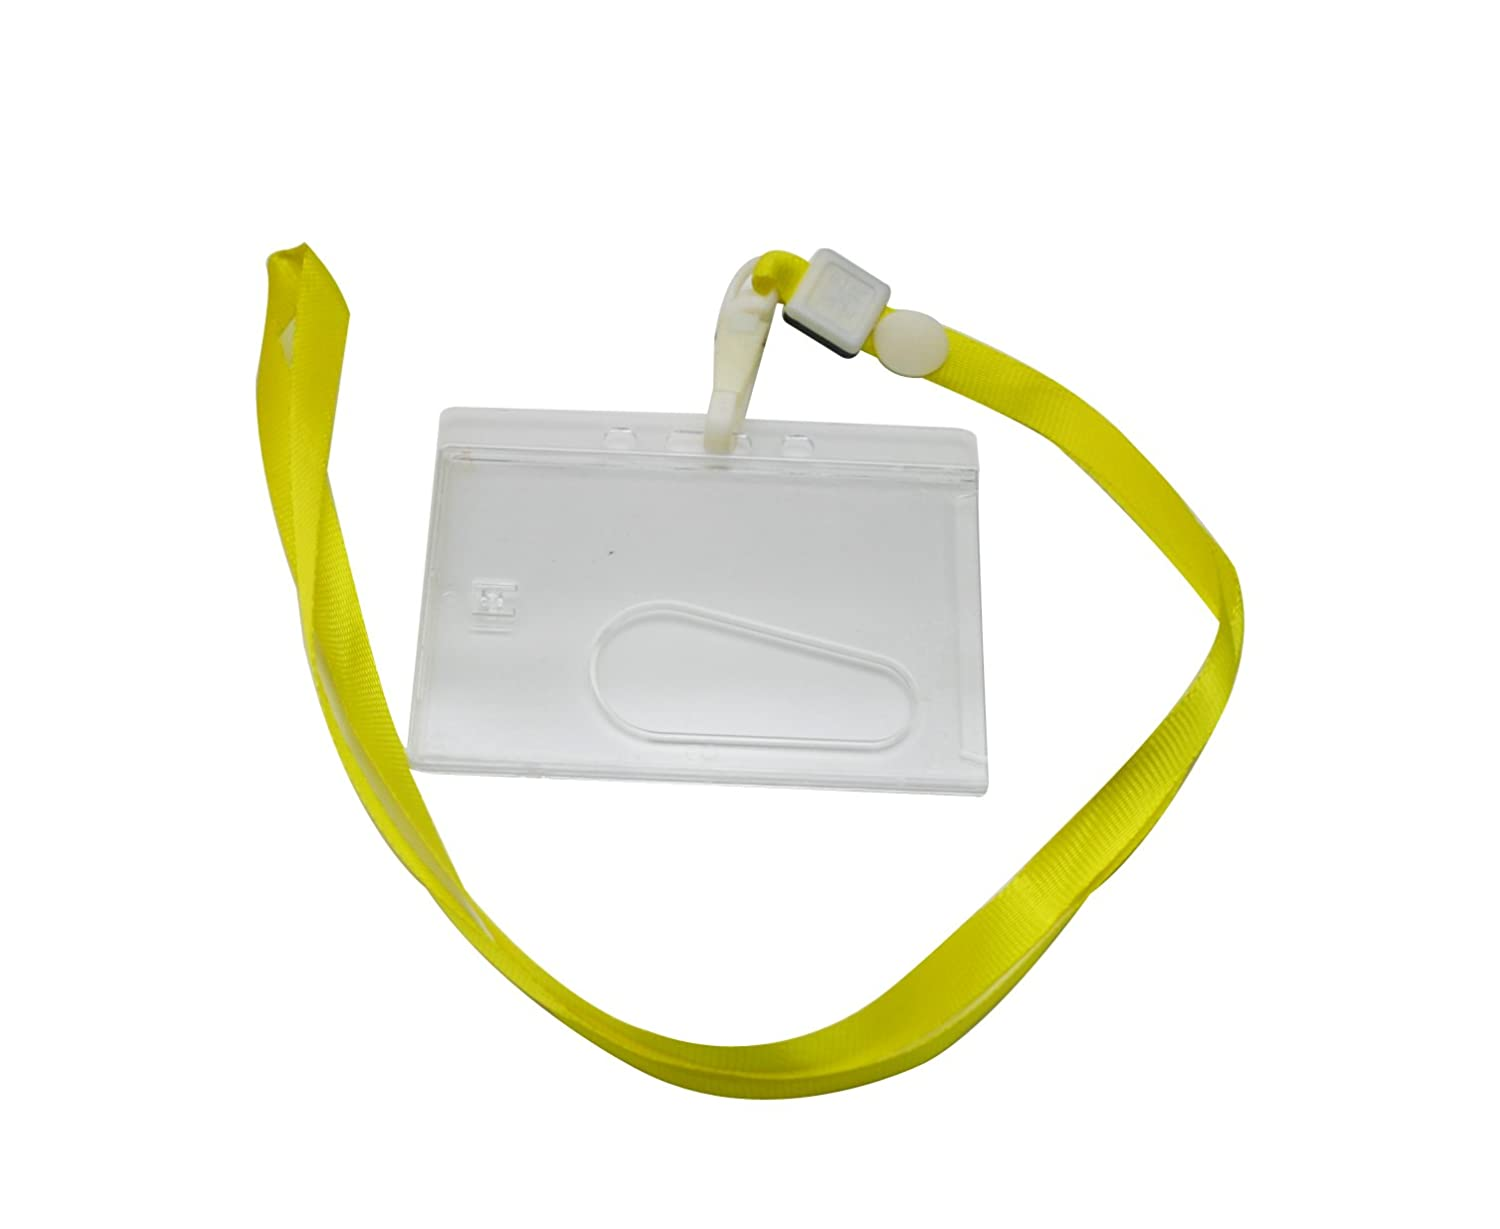 Yongshida Horizontal Card Holder Neck Strap Lanyard Color Yellow Clip Pack of 10